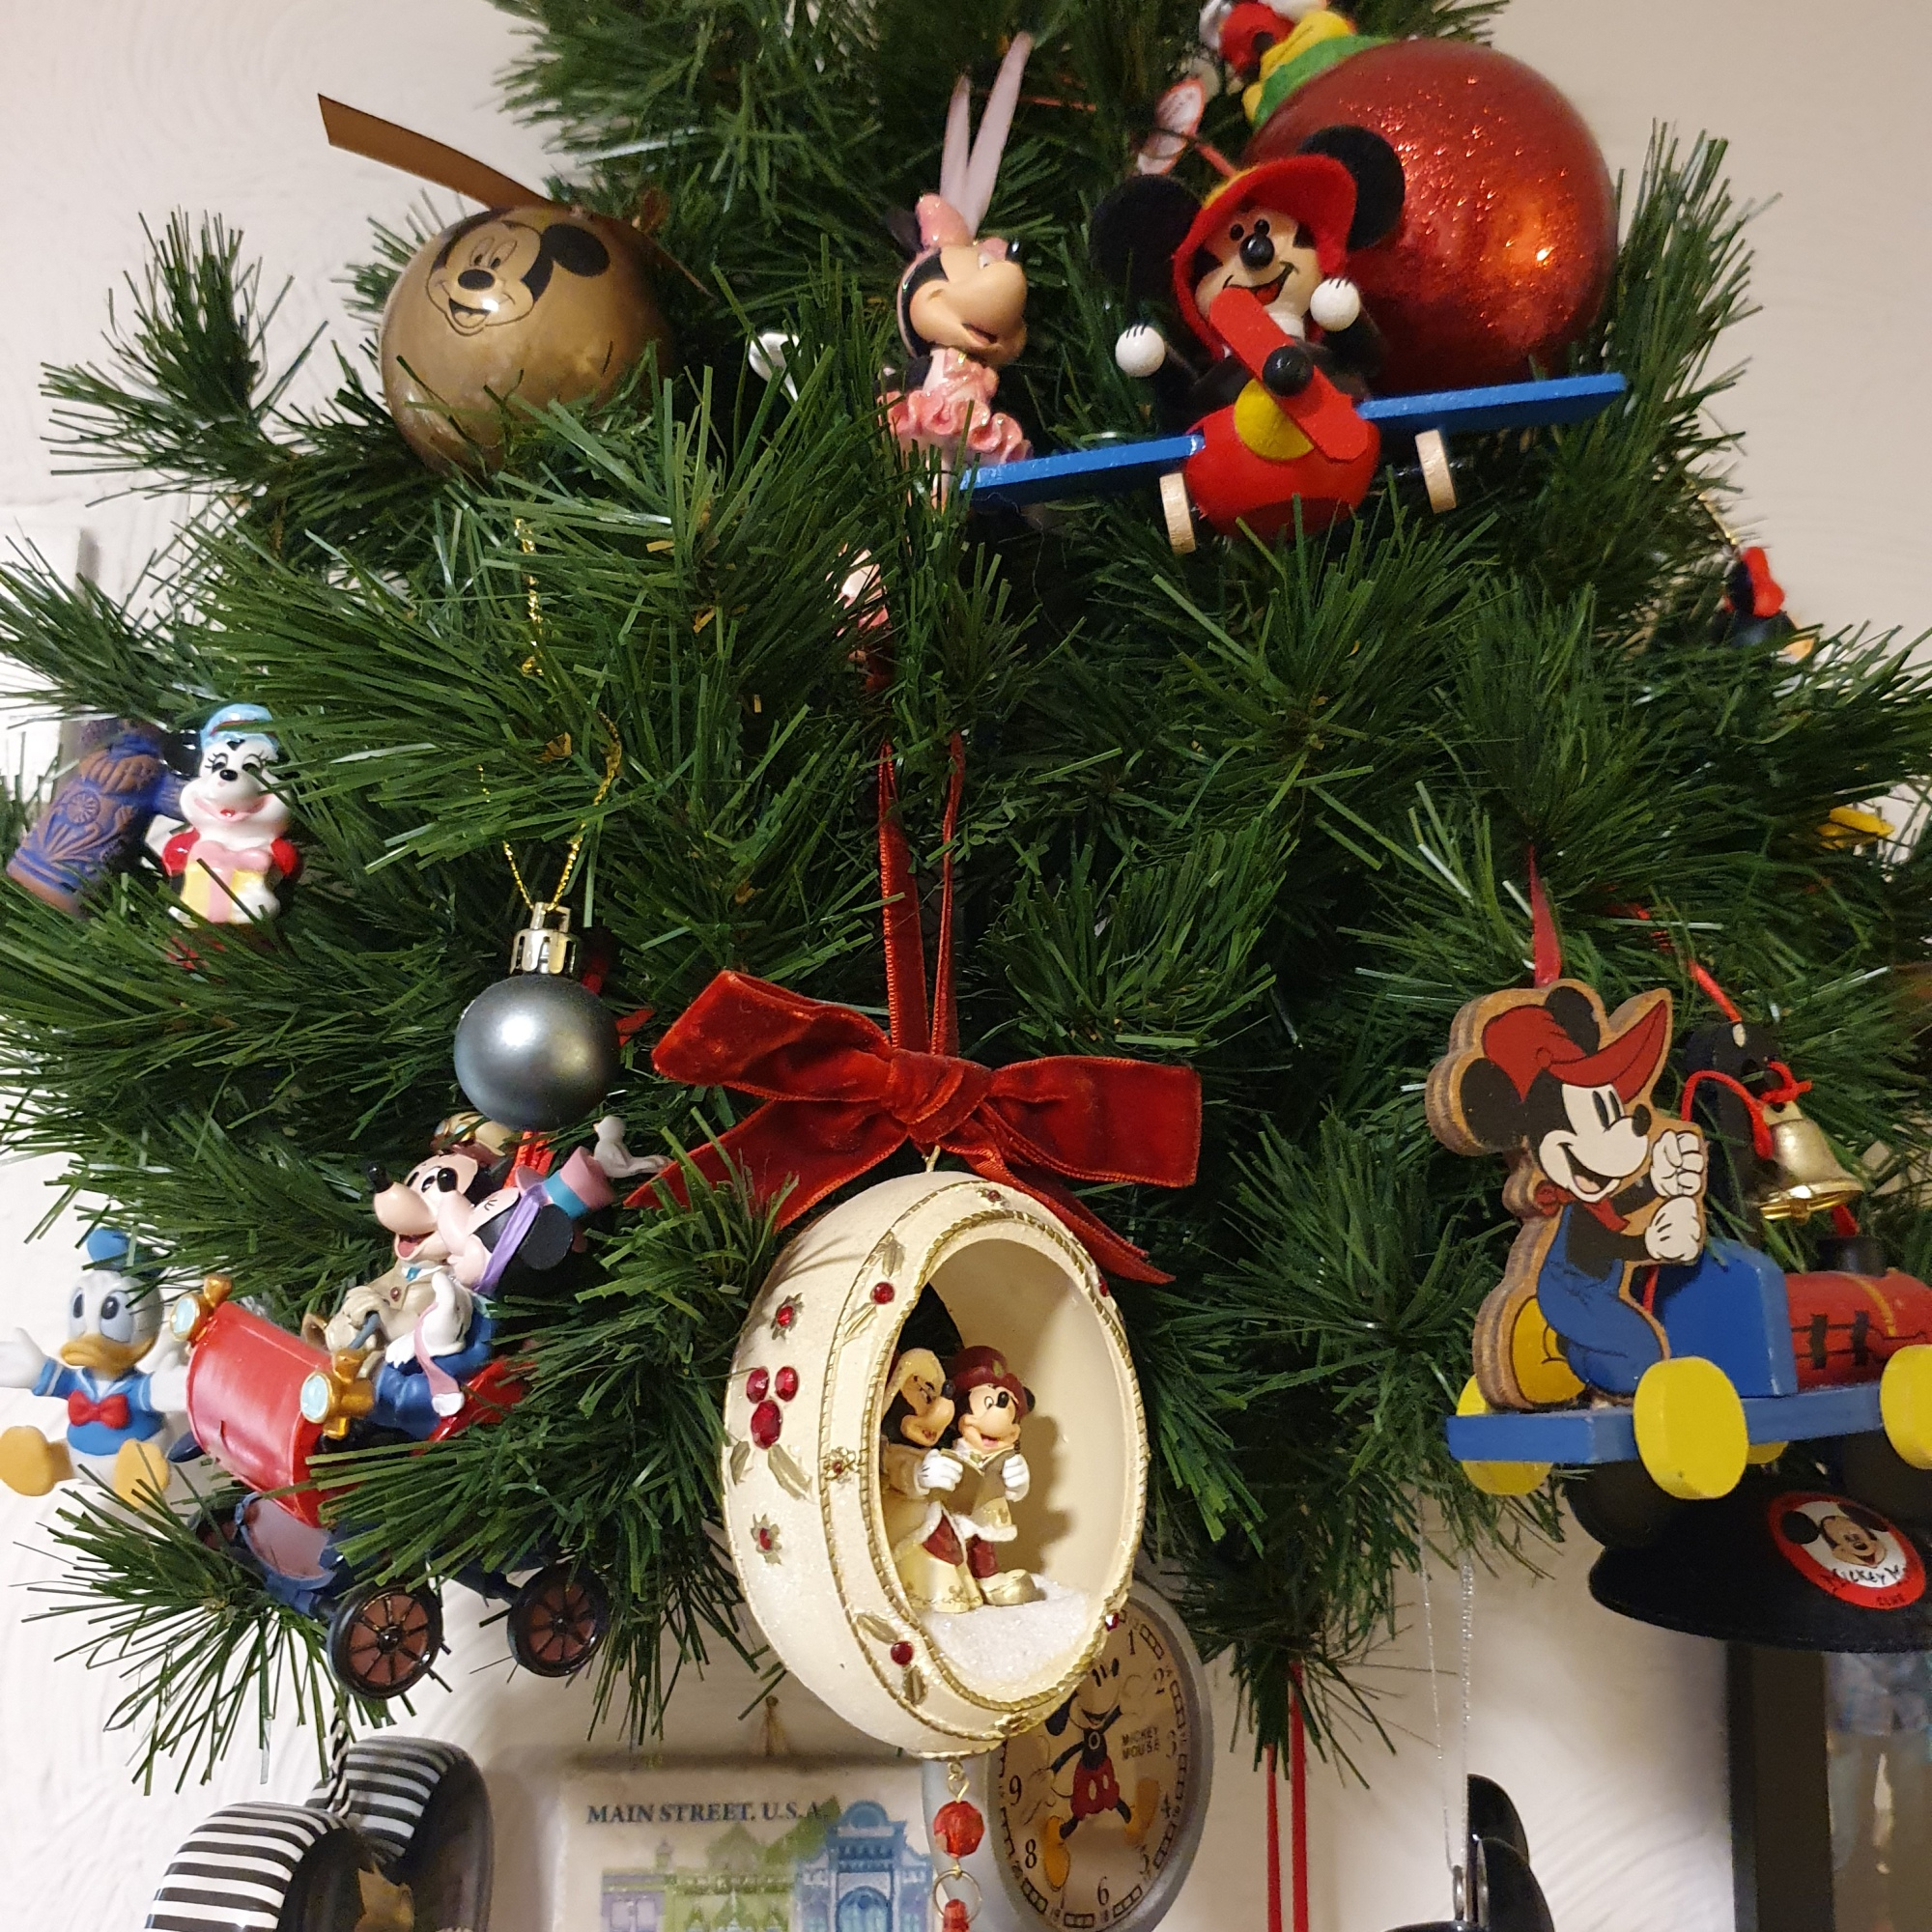 ASmall tree featuring lots of Disney ornaments, mostly Mickey and Minnie